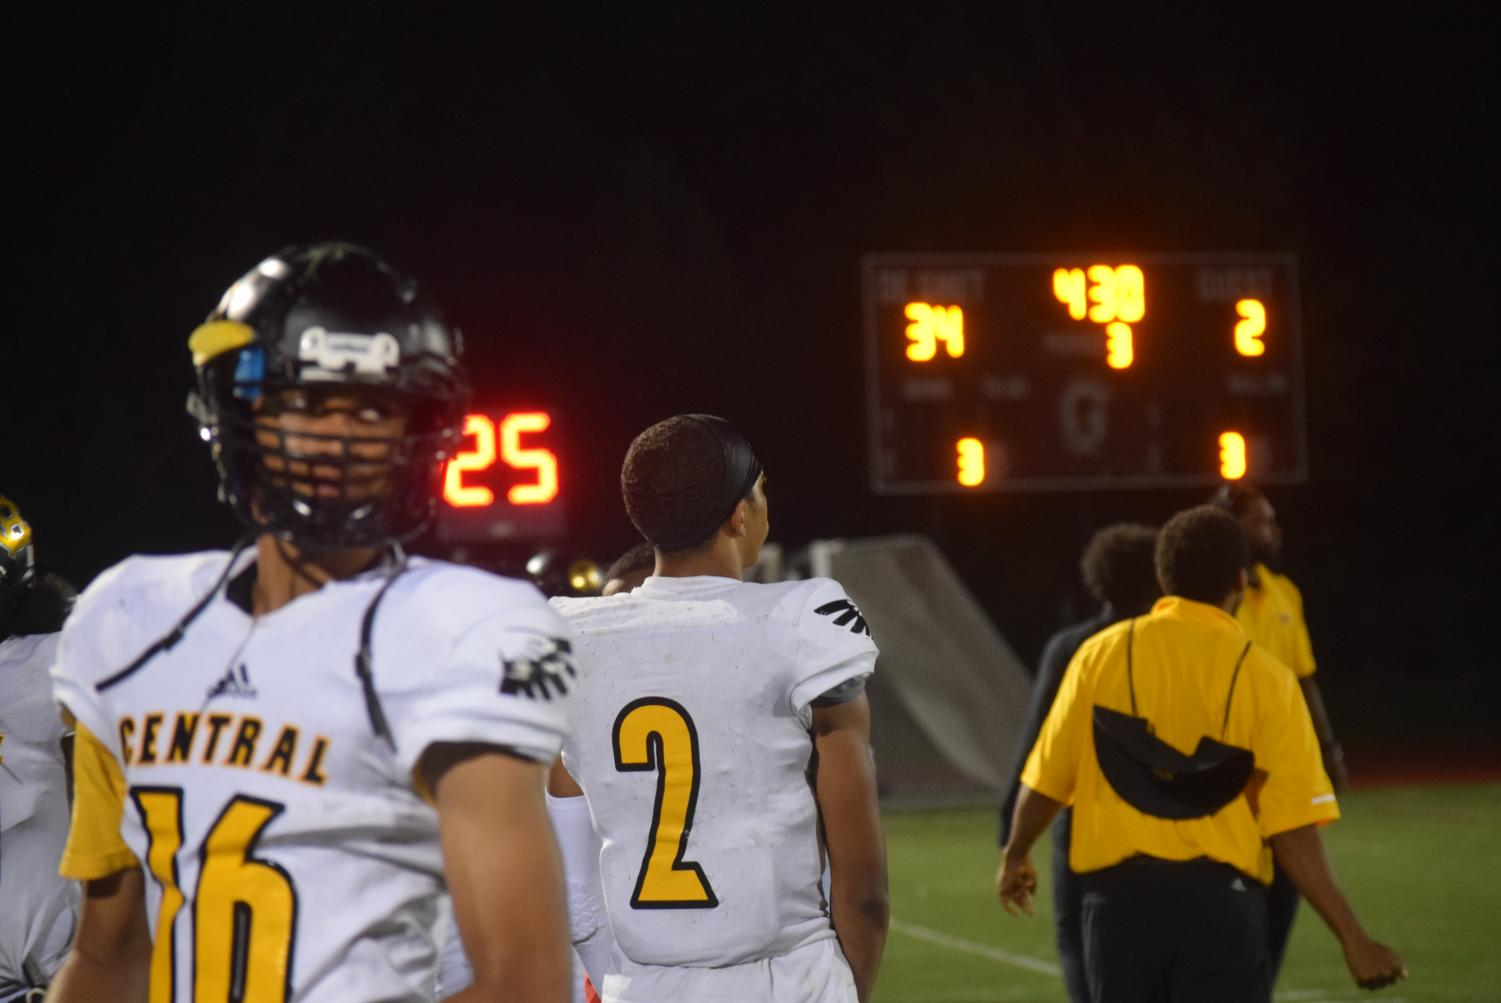 Senior quarterback Sean Stephens looks on during the third quarter of the game at DeSmet. Stephens has been booed before and didn't enjoy the experience.